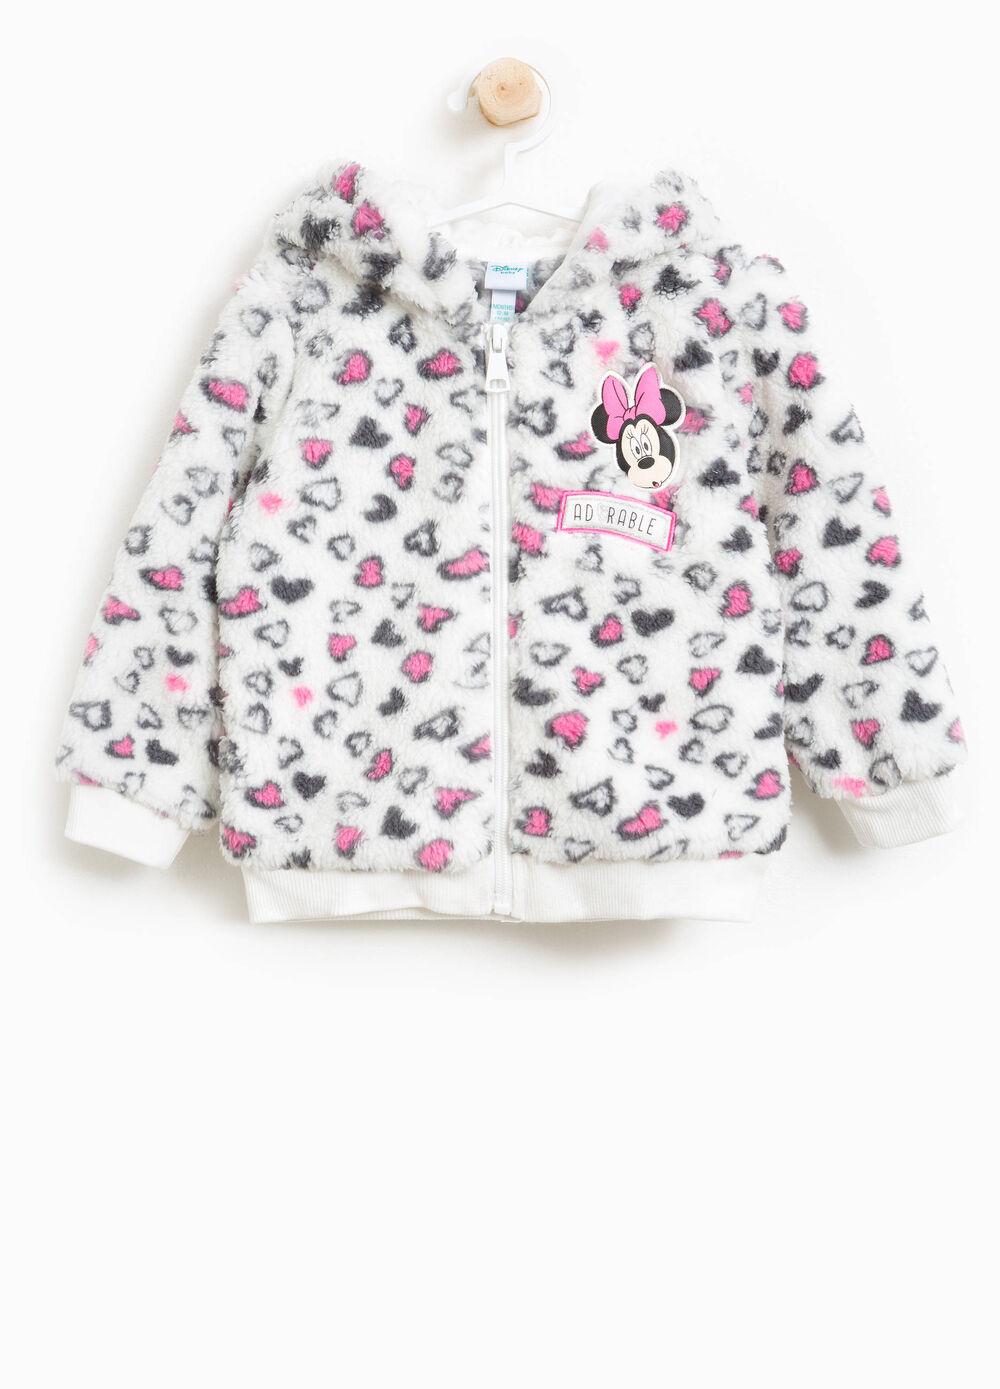 Faux fur sweatshirt with Minnie Mouse and hearts